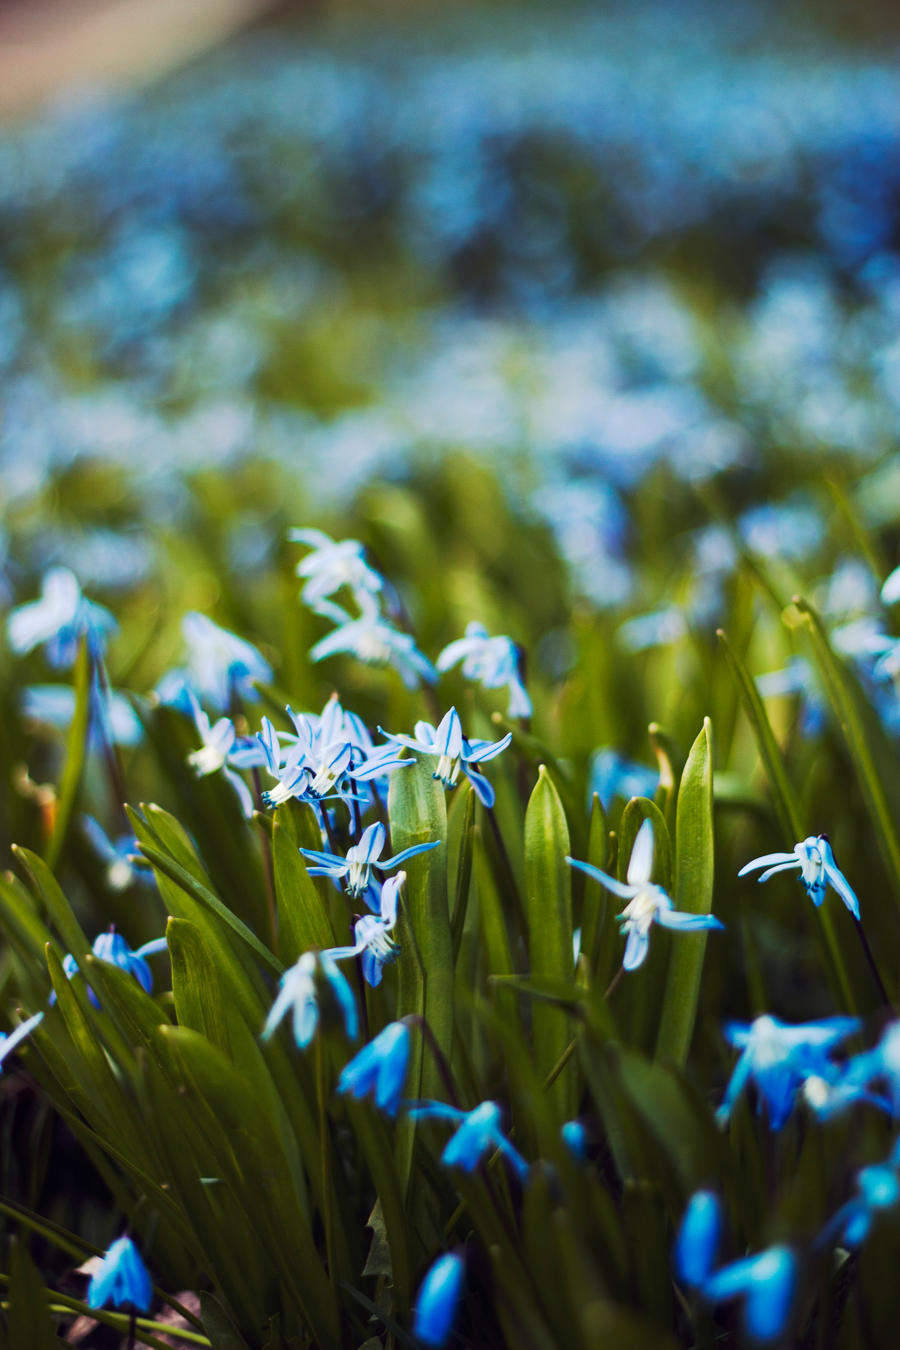 Blue Flowers by Atinaj